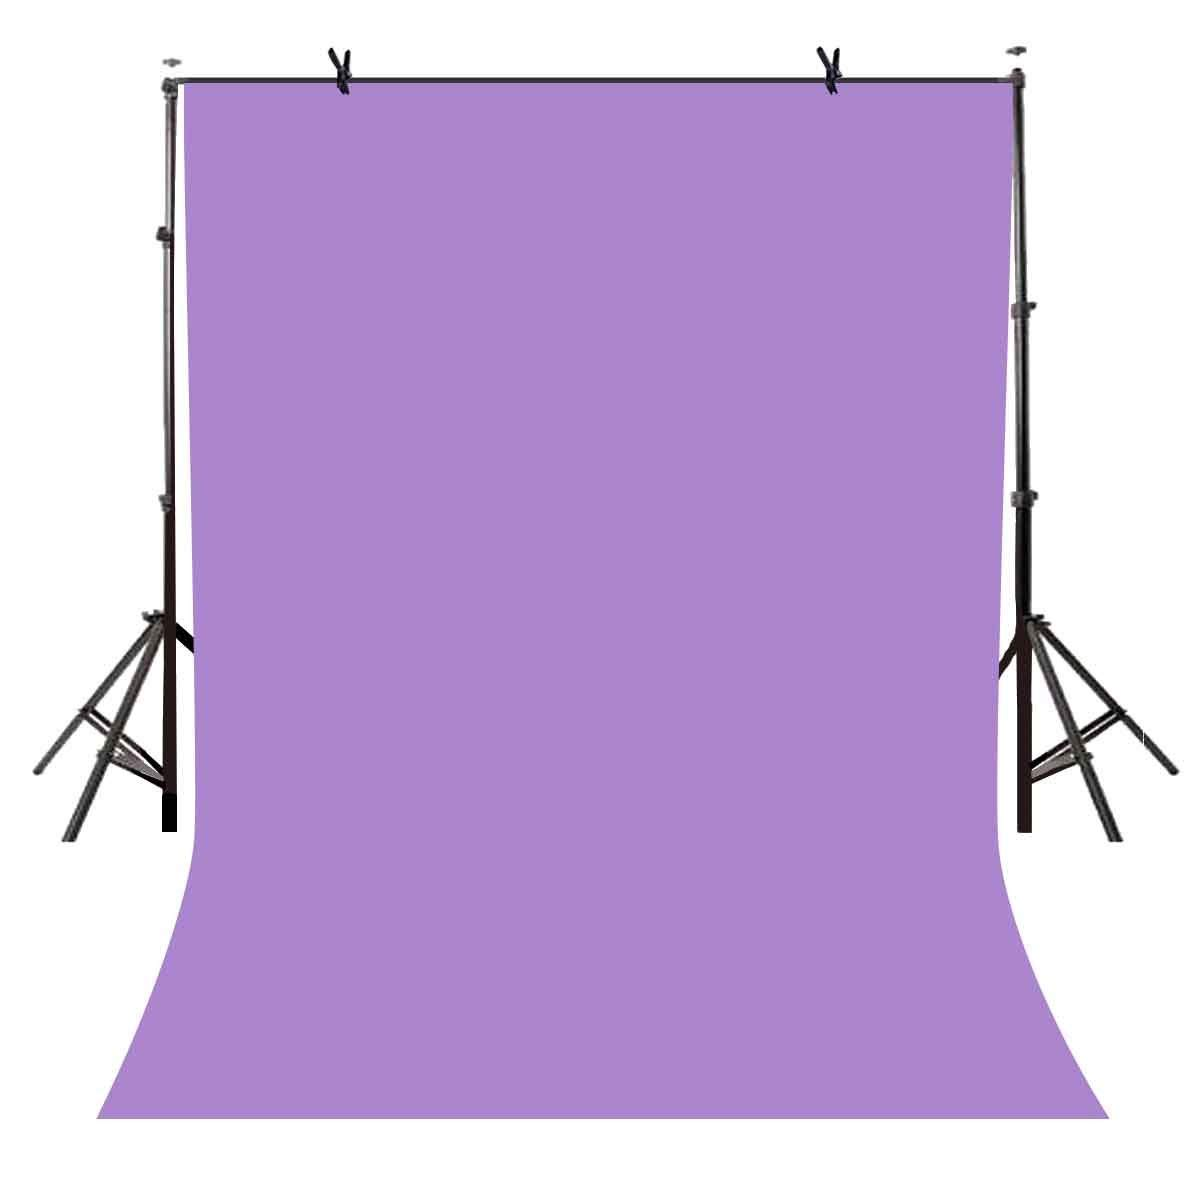 150x210cm Photography Studio Non-woven Backdrop Light Purple Solid Color Simple Background LY087